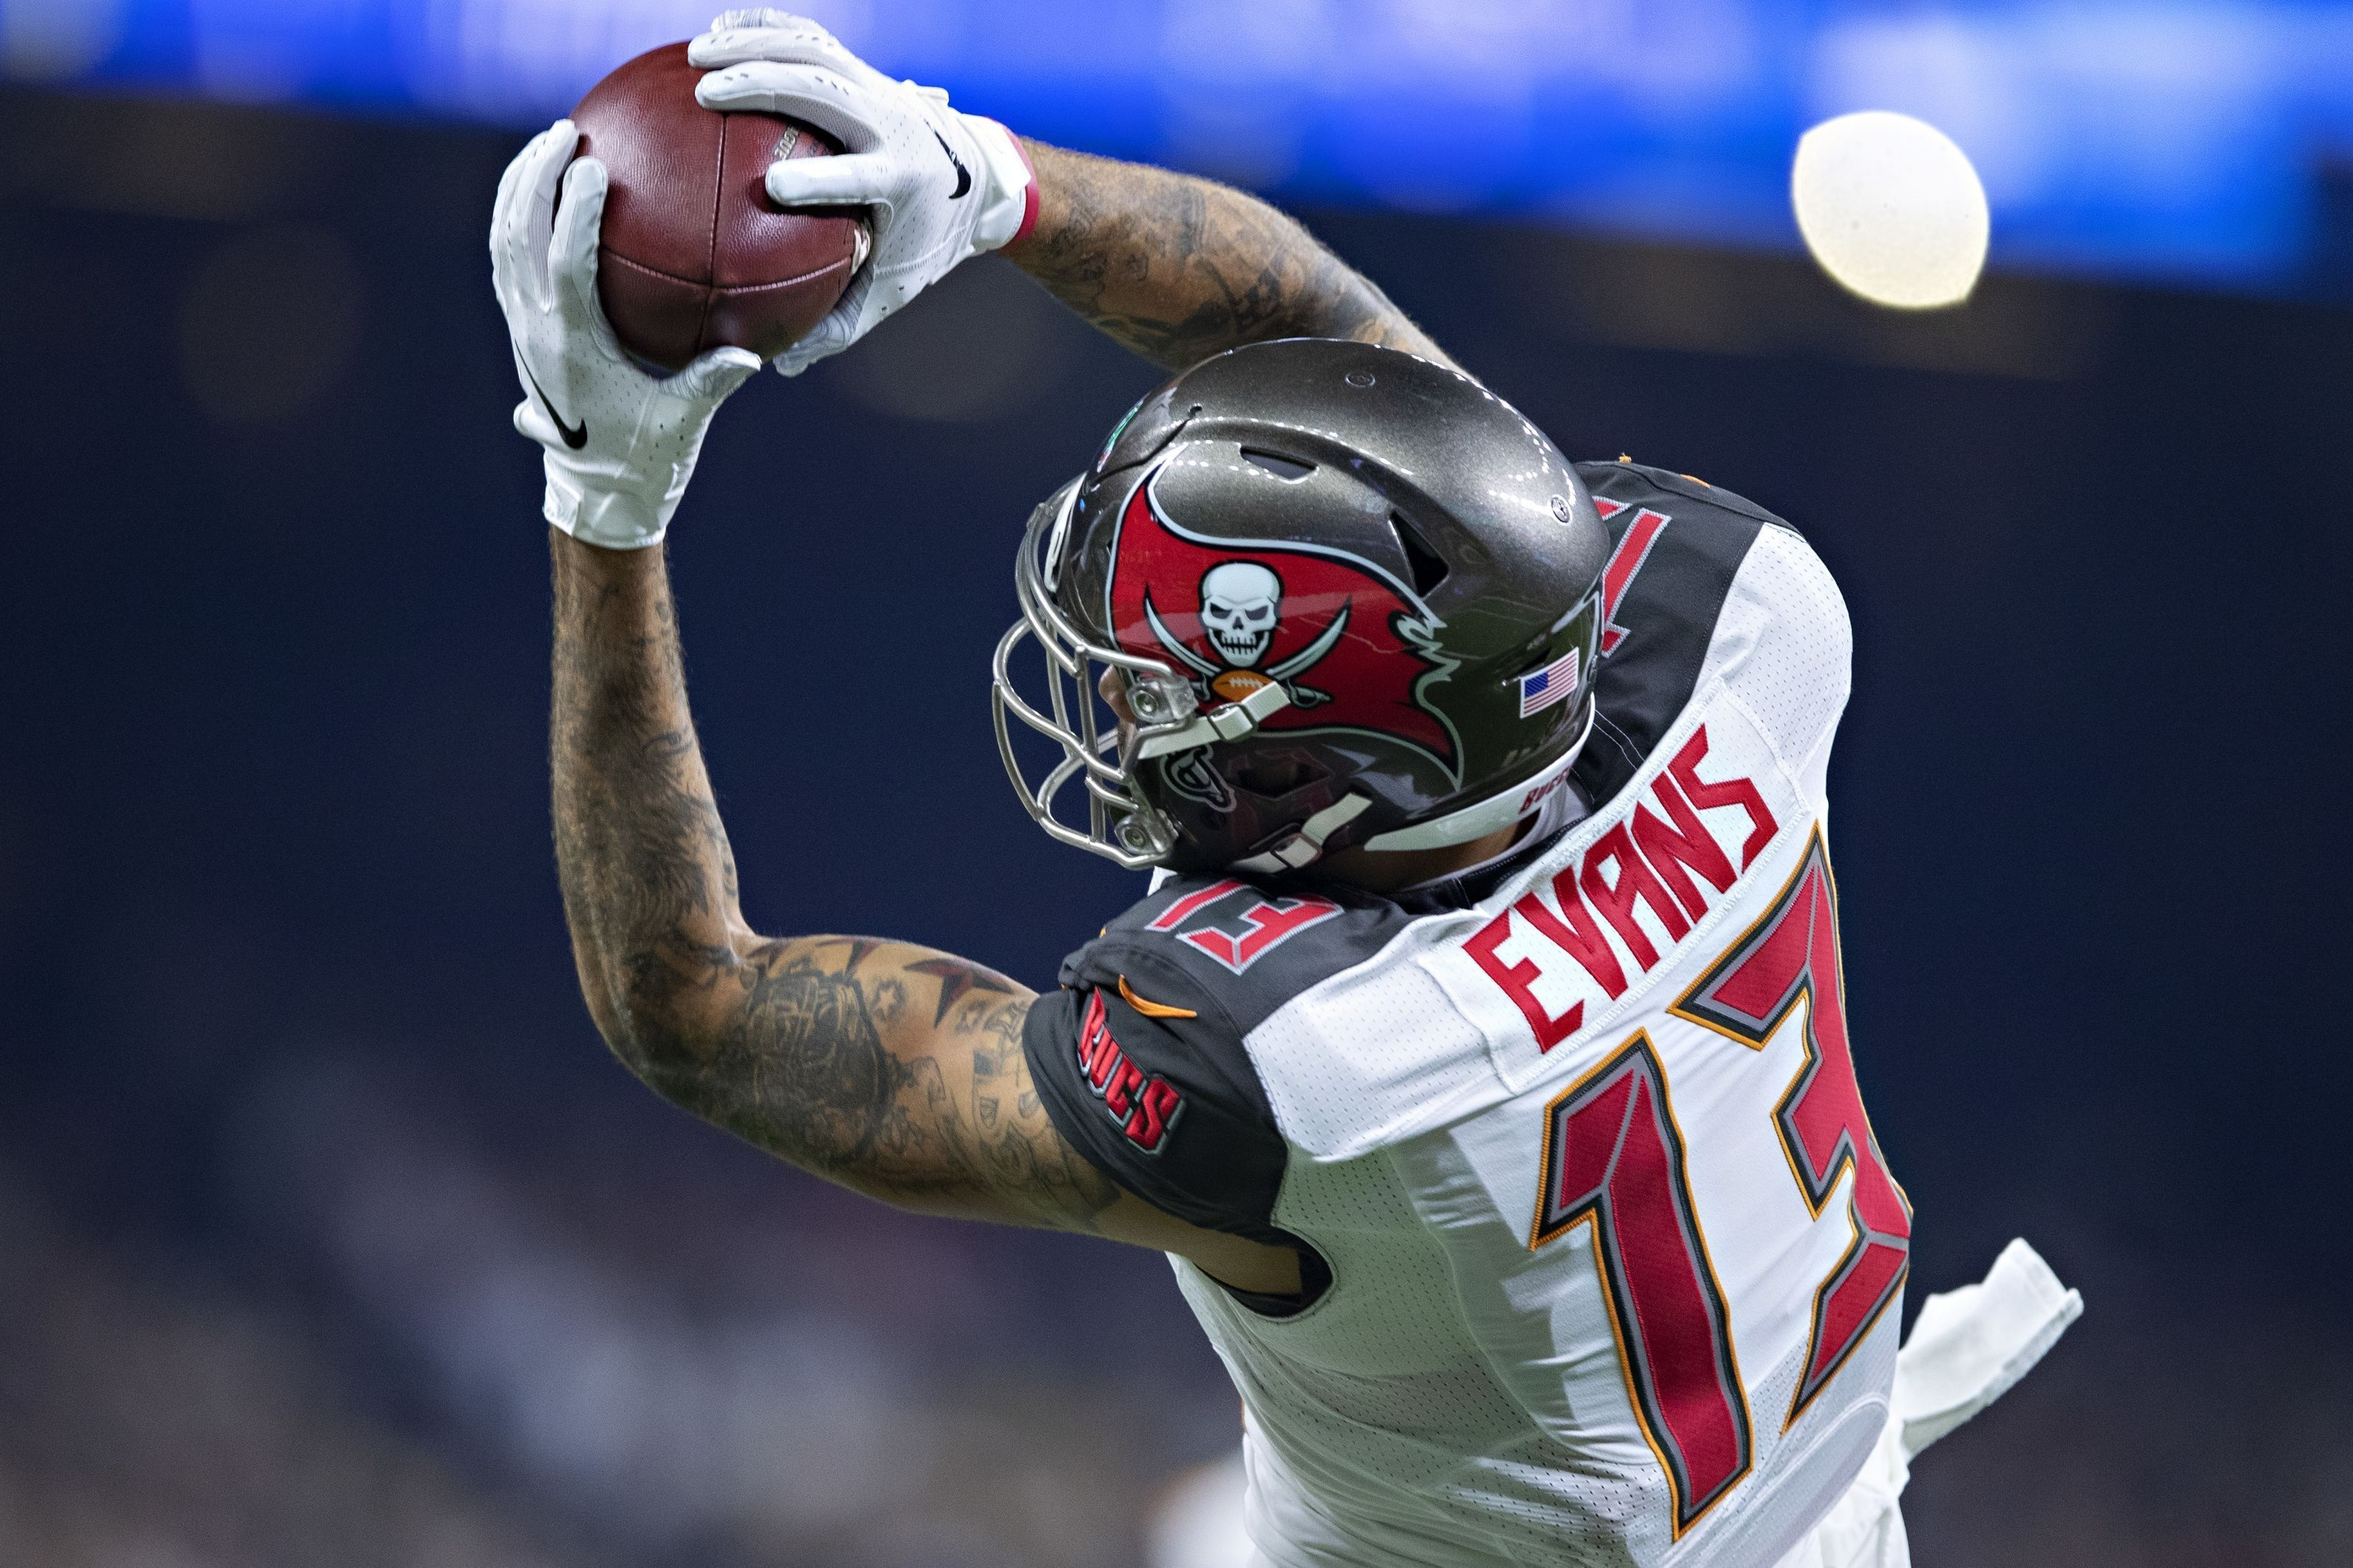 Fresh Mike Evans Wallpaper In 2020 Mike Evans Football League National Football League